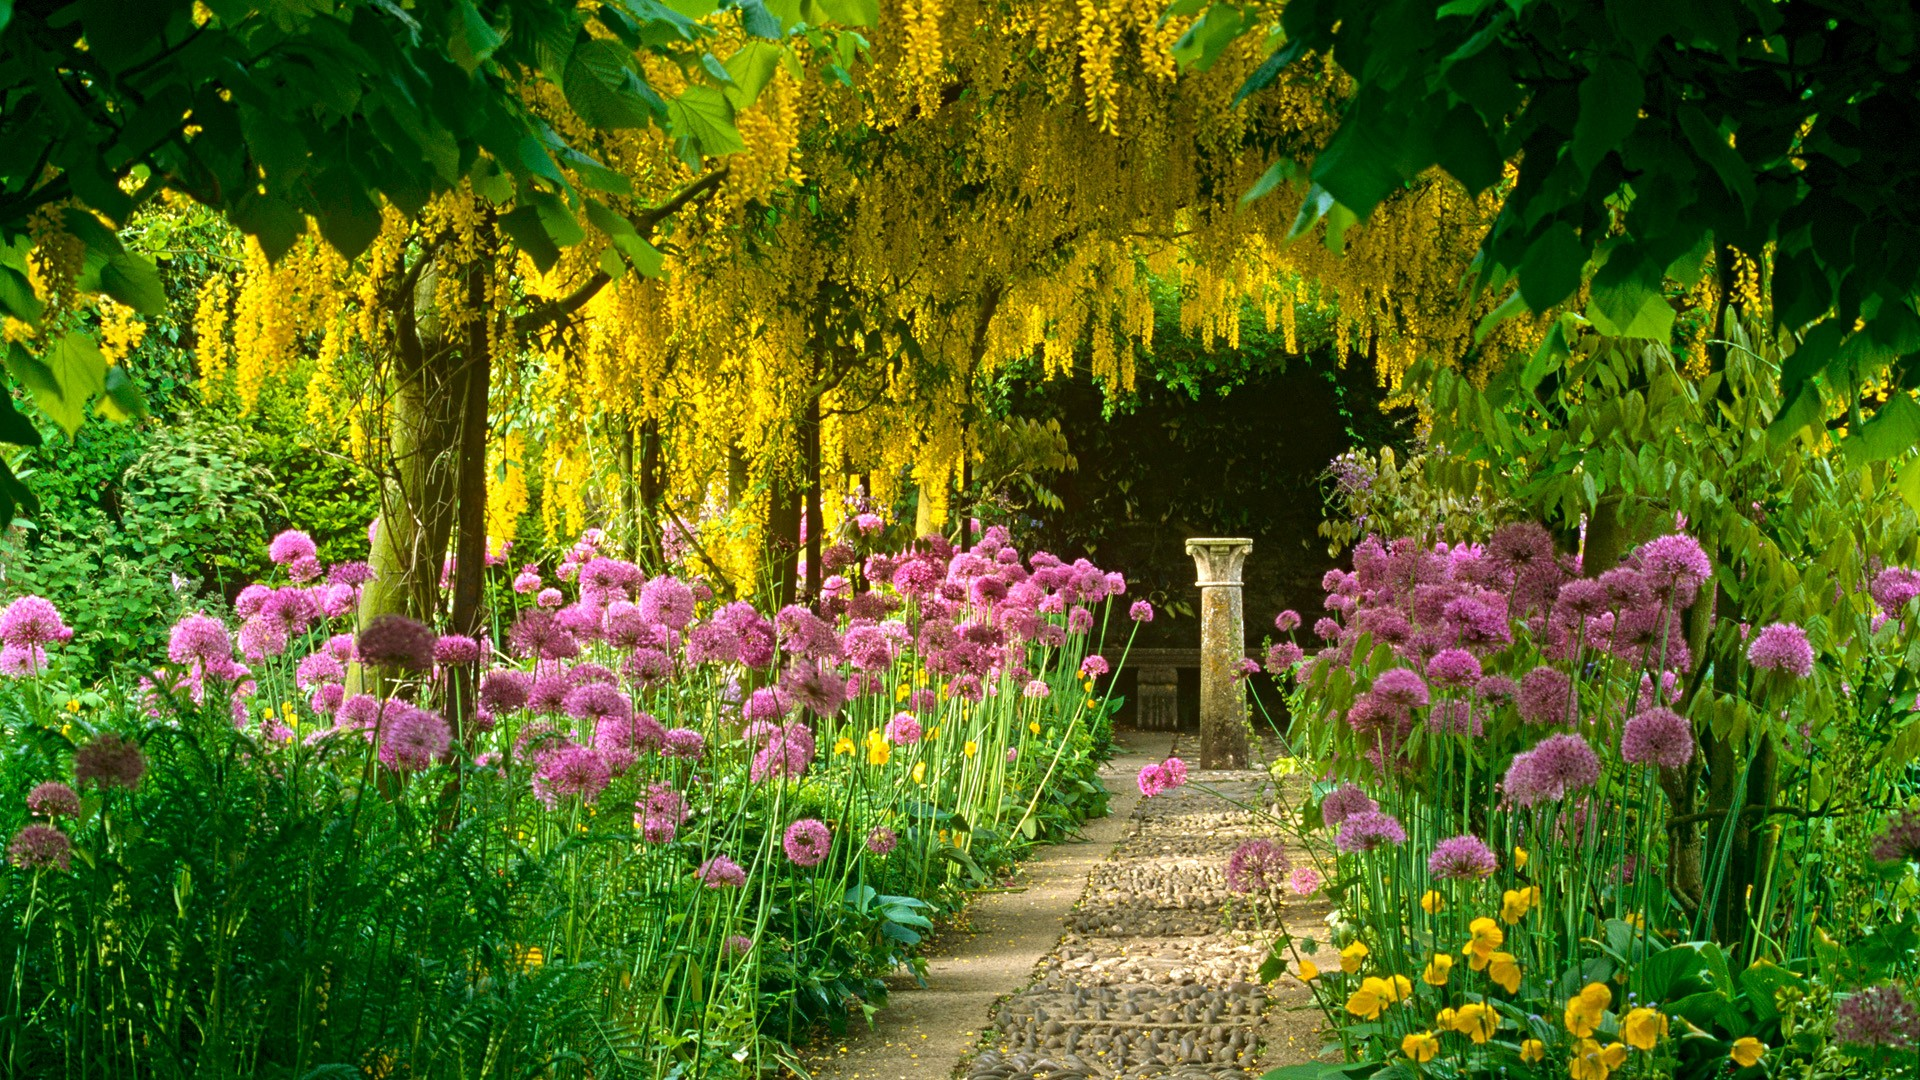 Hd wallpaper garden - Hd Wallpaper Garden 3